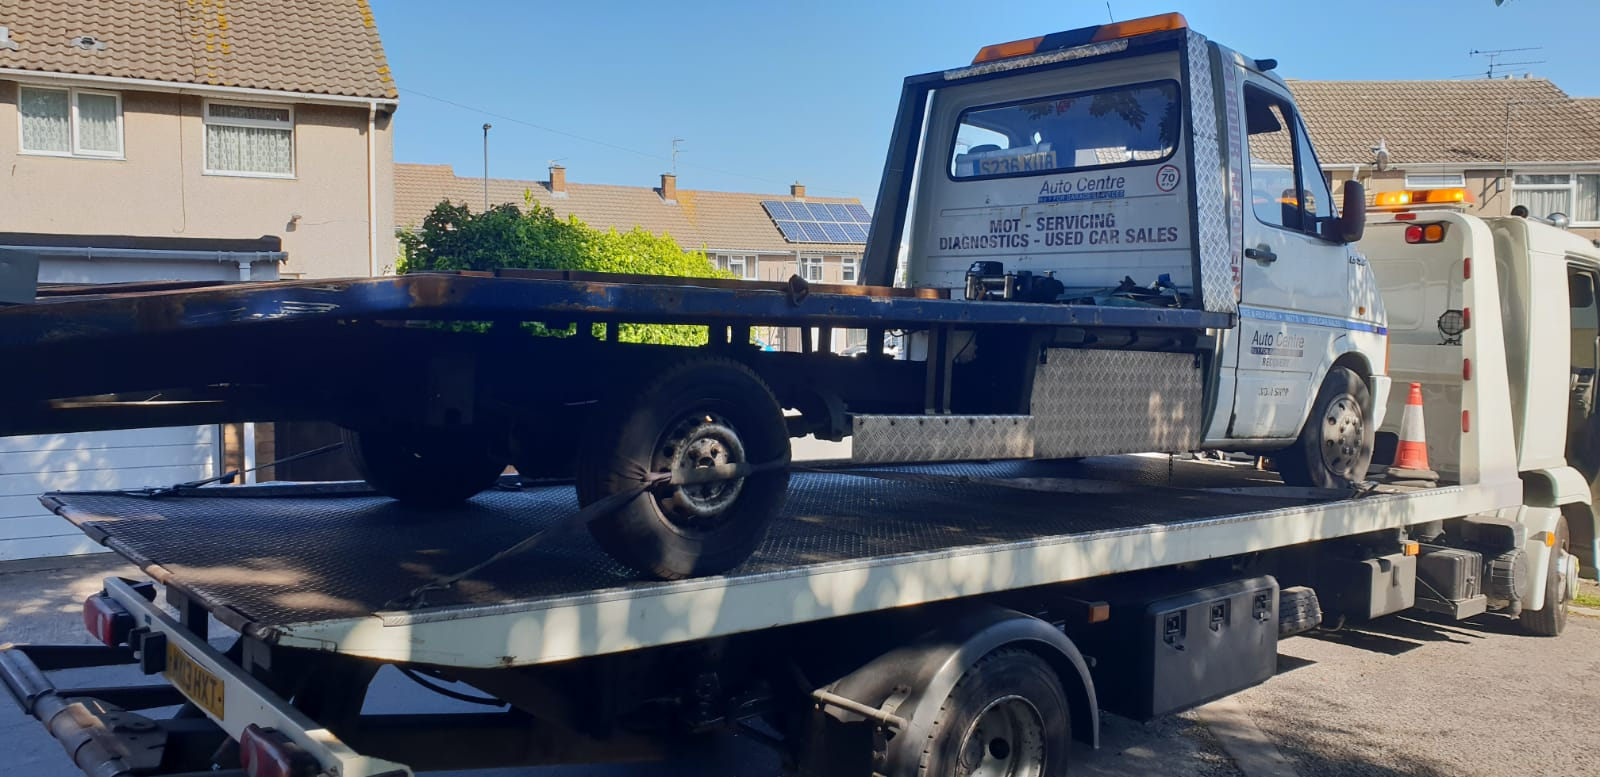 Transporting and rescuing recovery vehicles